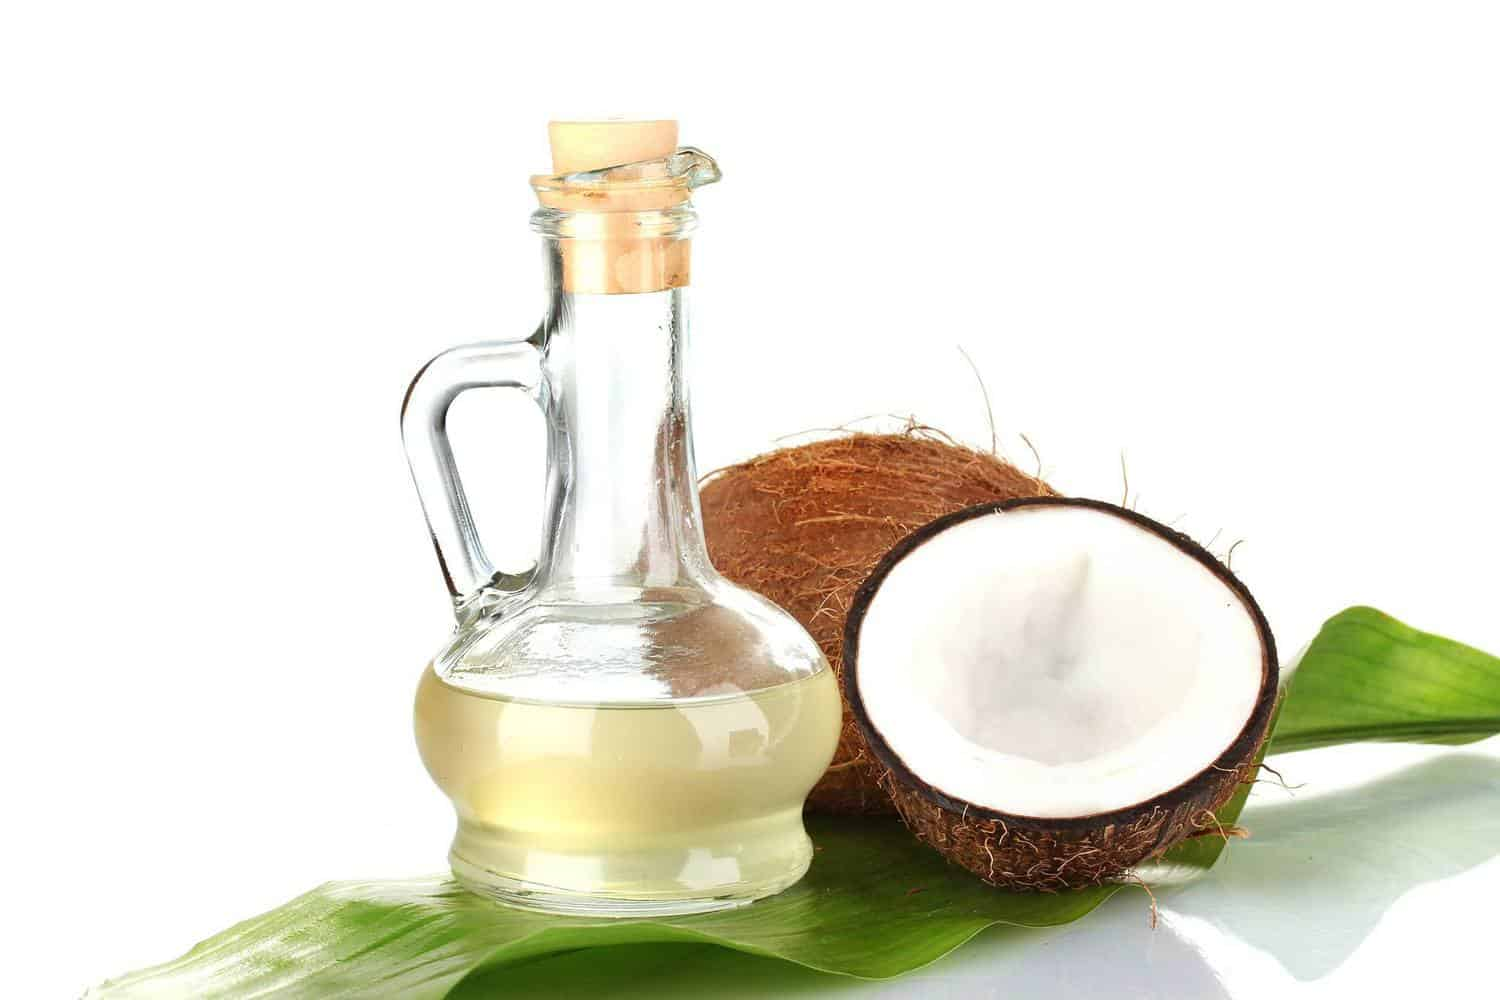 Coconut shells with coconut oil.